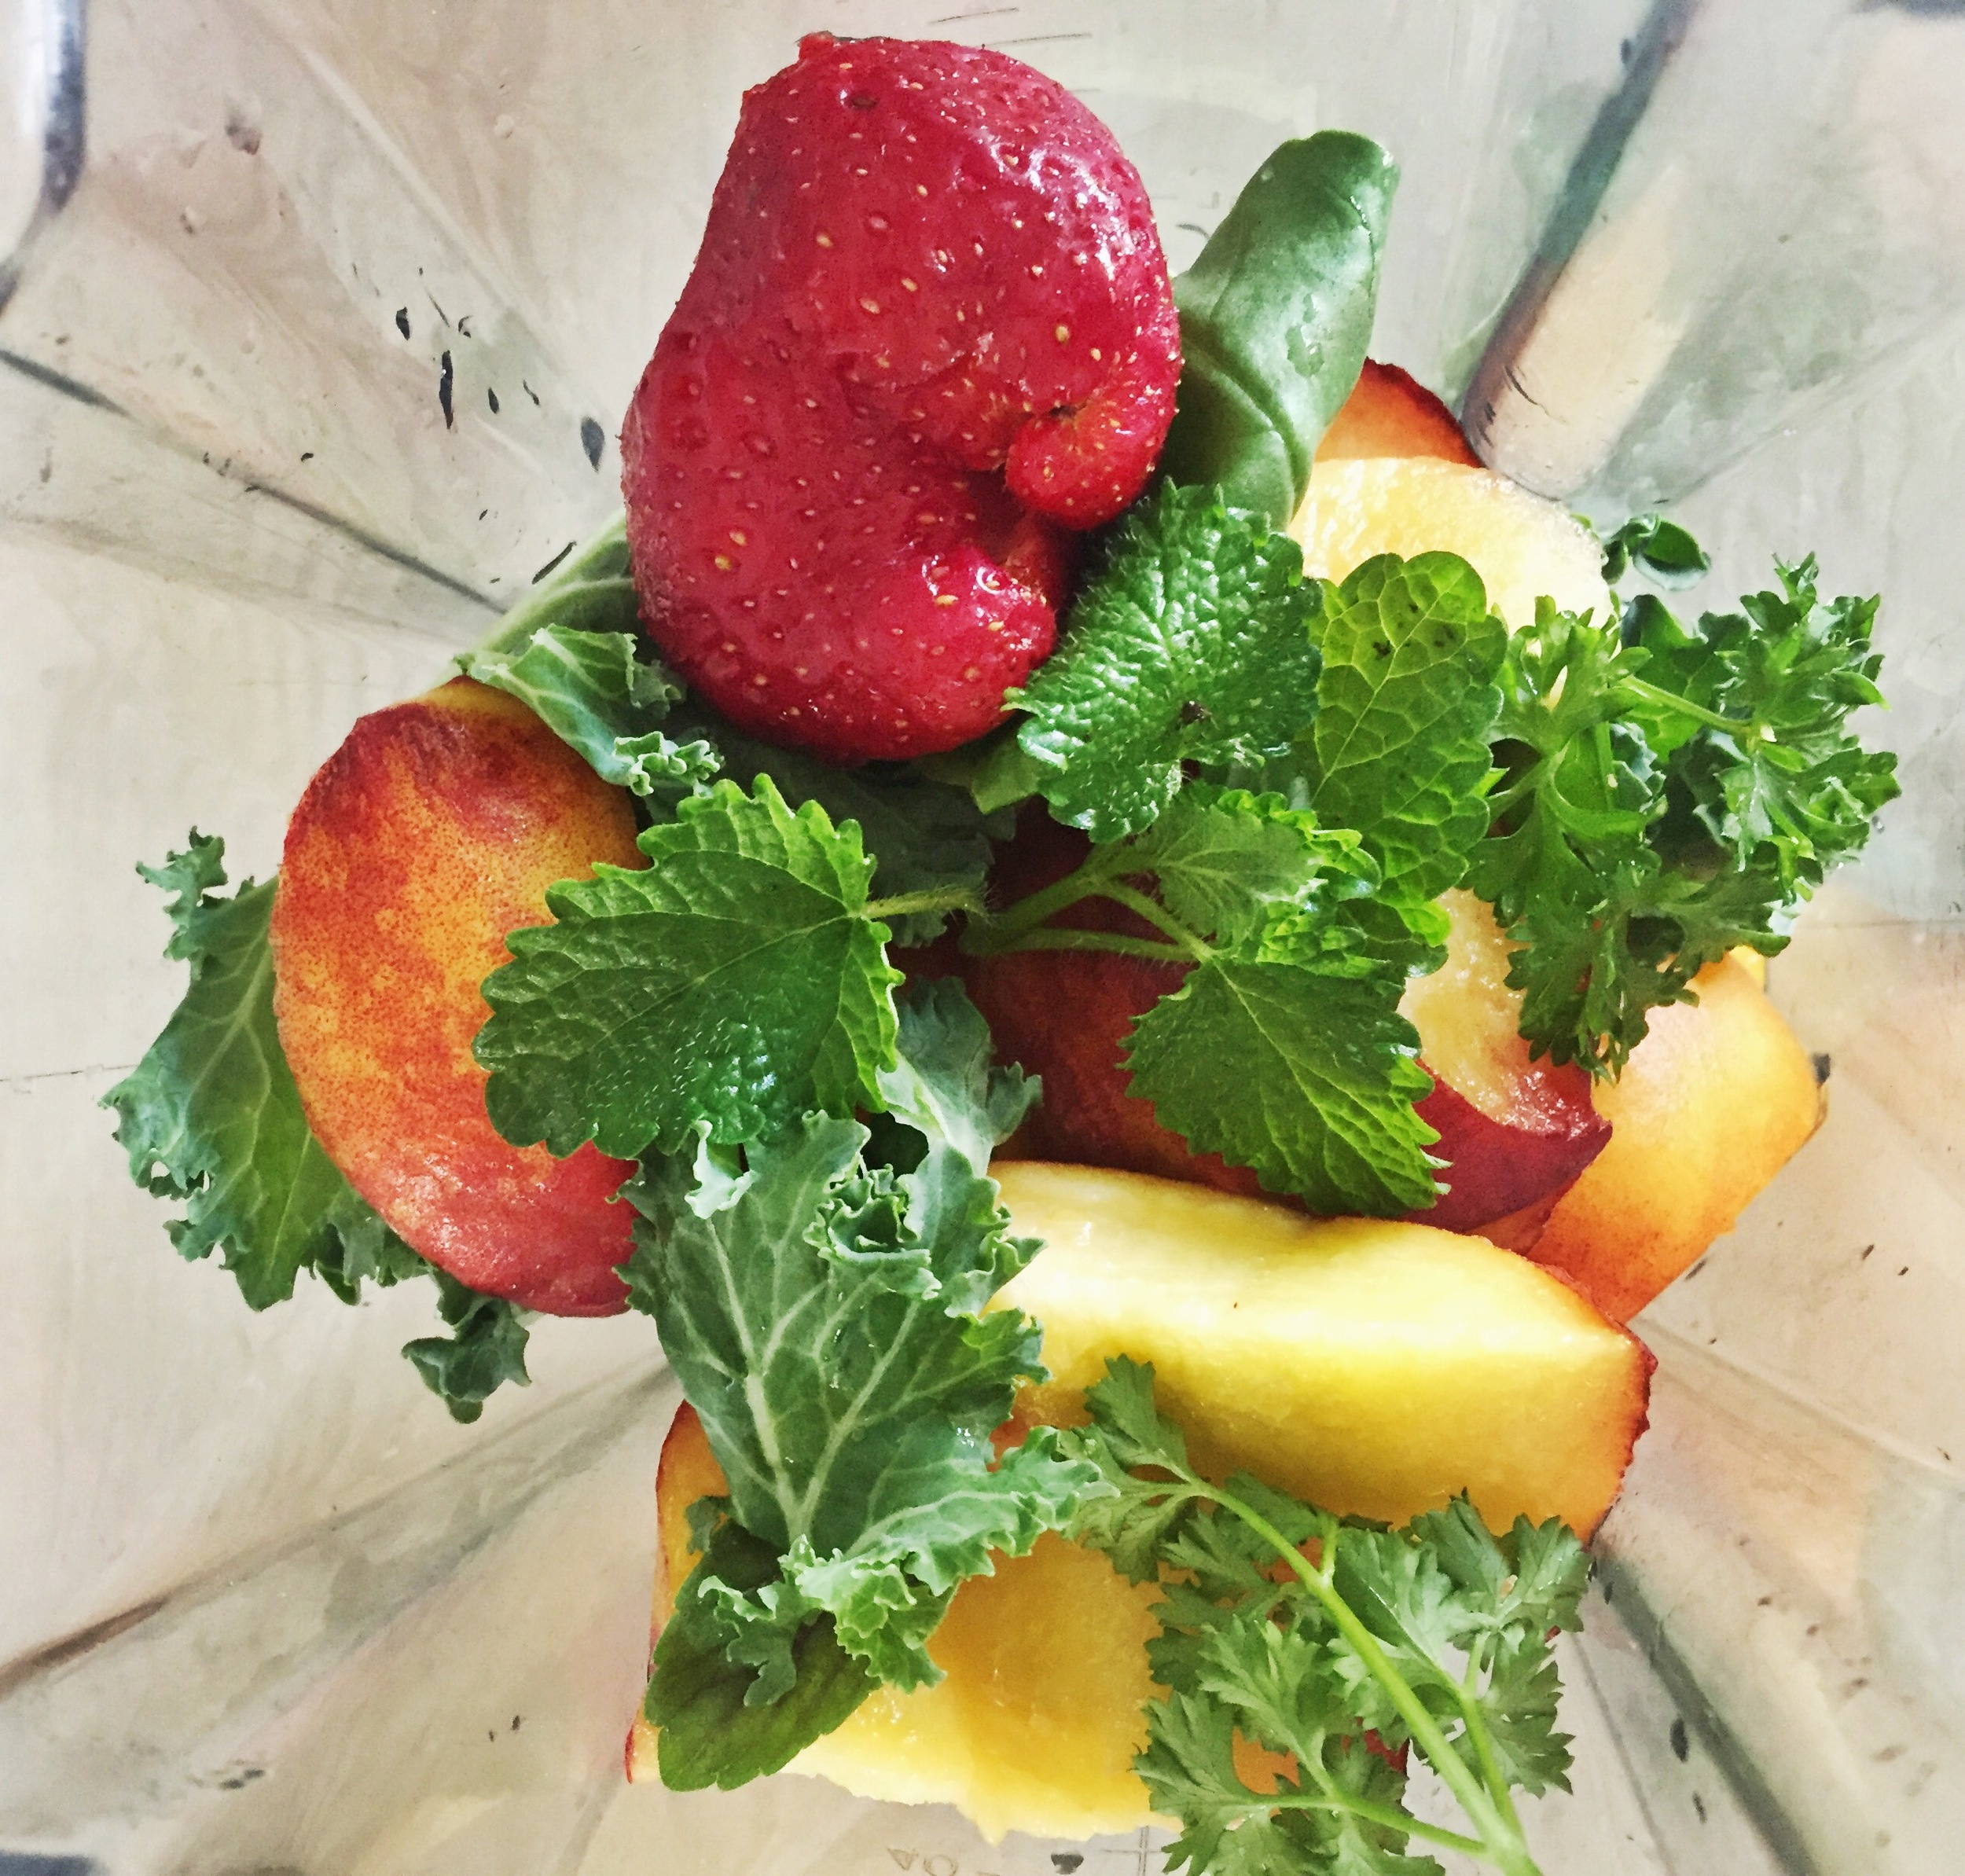 Peaches, kale, strawberries and mint from the local Farmer's Market